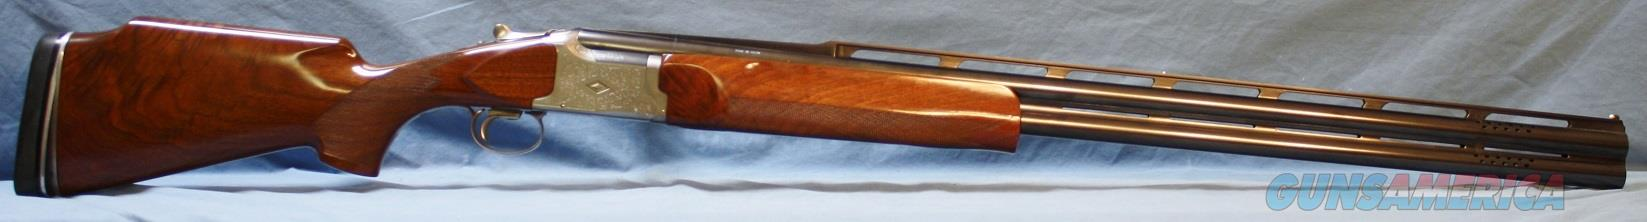 Winchester 101 Diamond Grade Over/Under Shotgun, 12 Gauge   Guns > Shotguns > Winchester Shotguns - Modern > O/U > Trap/Skeet